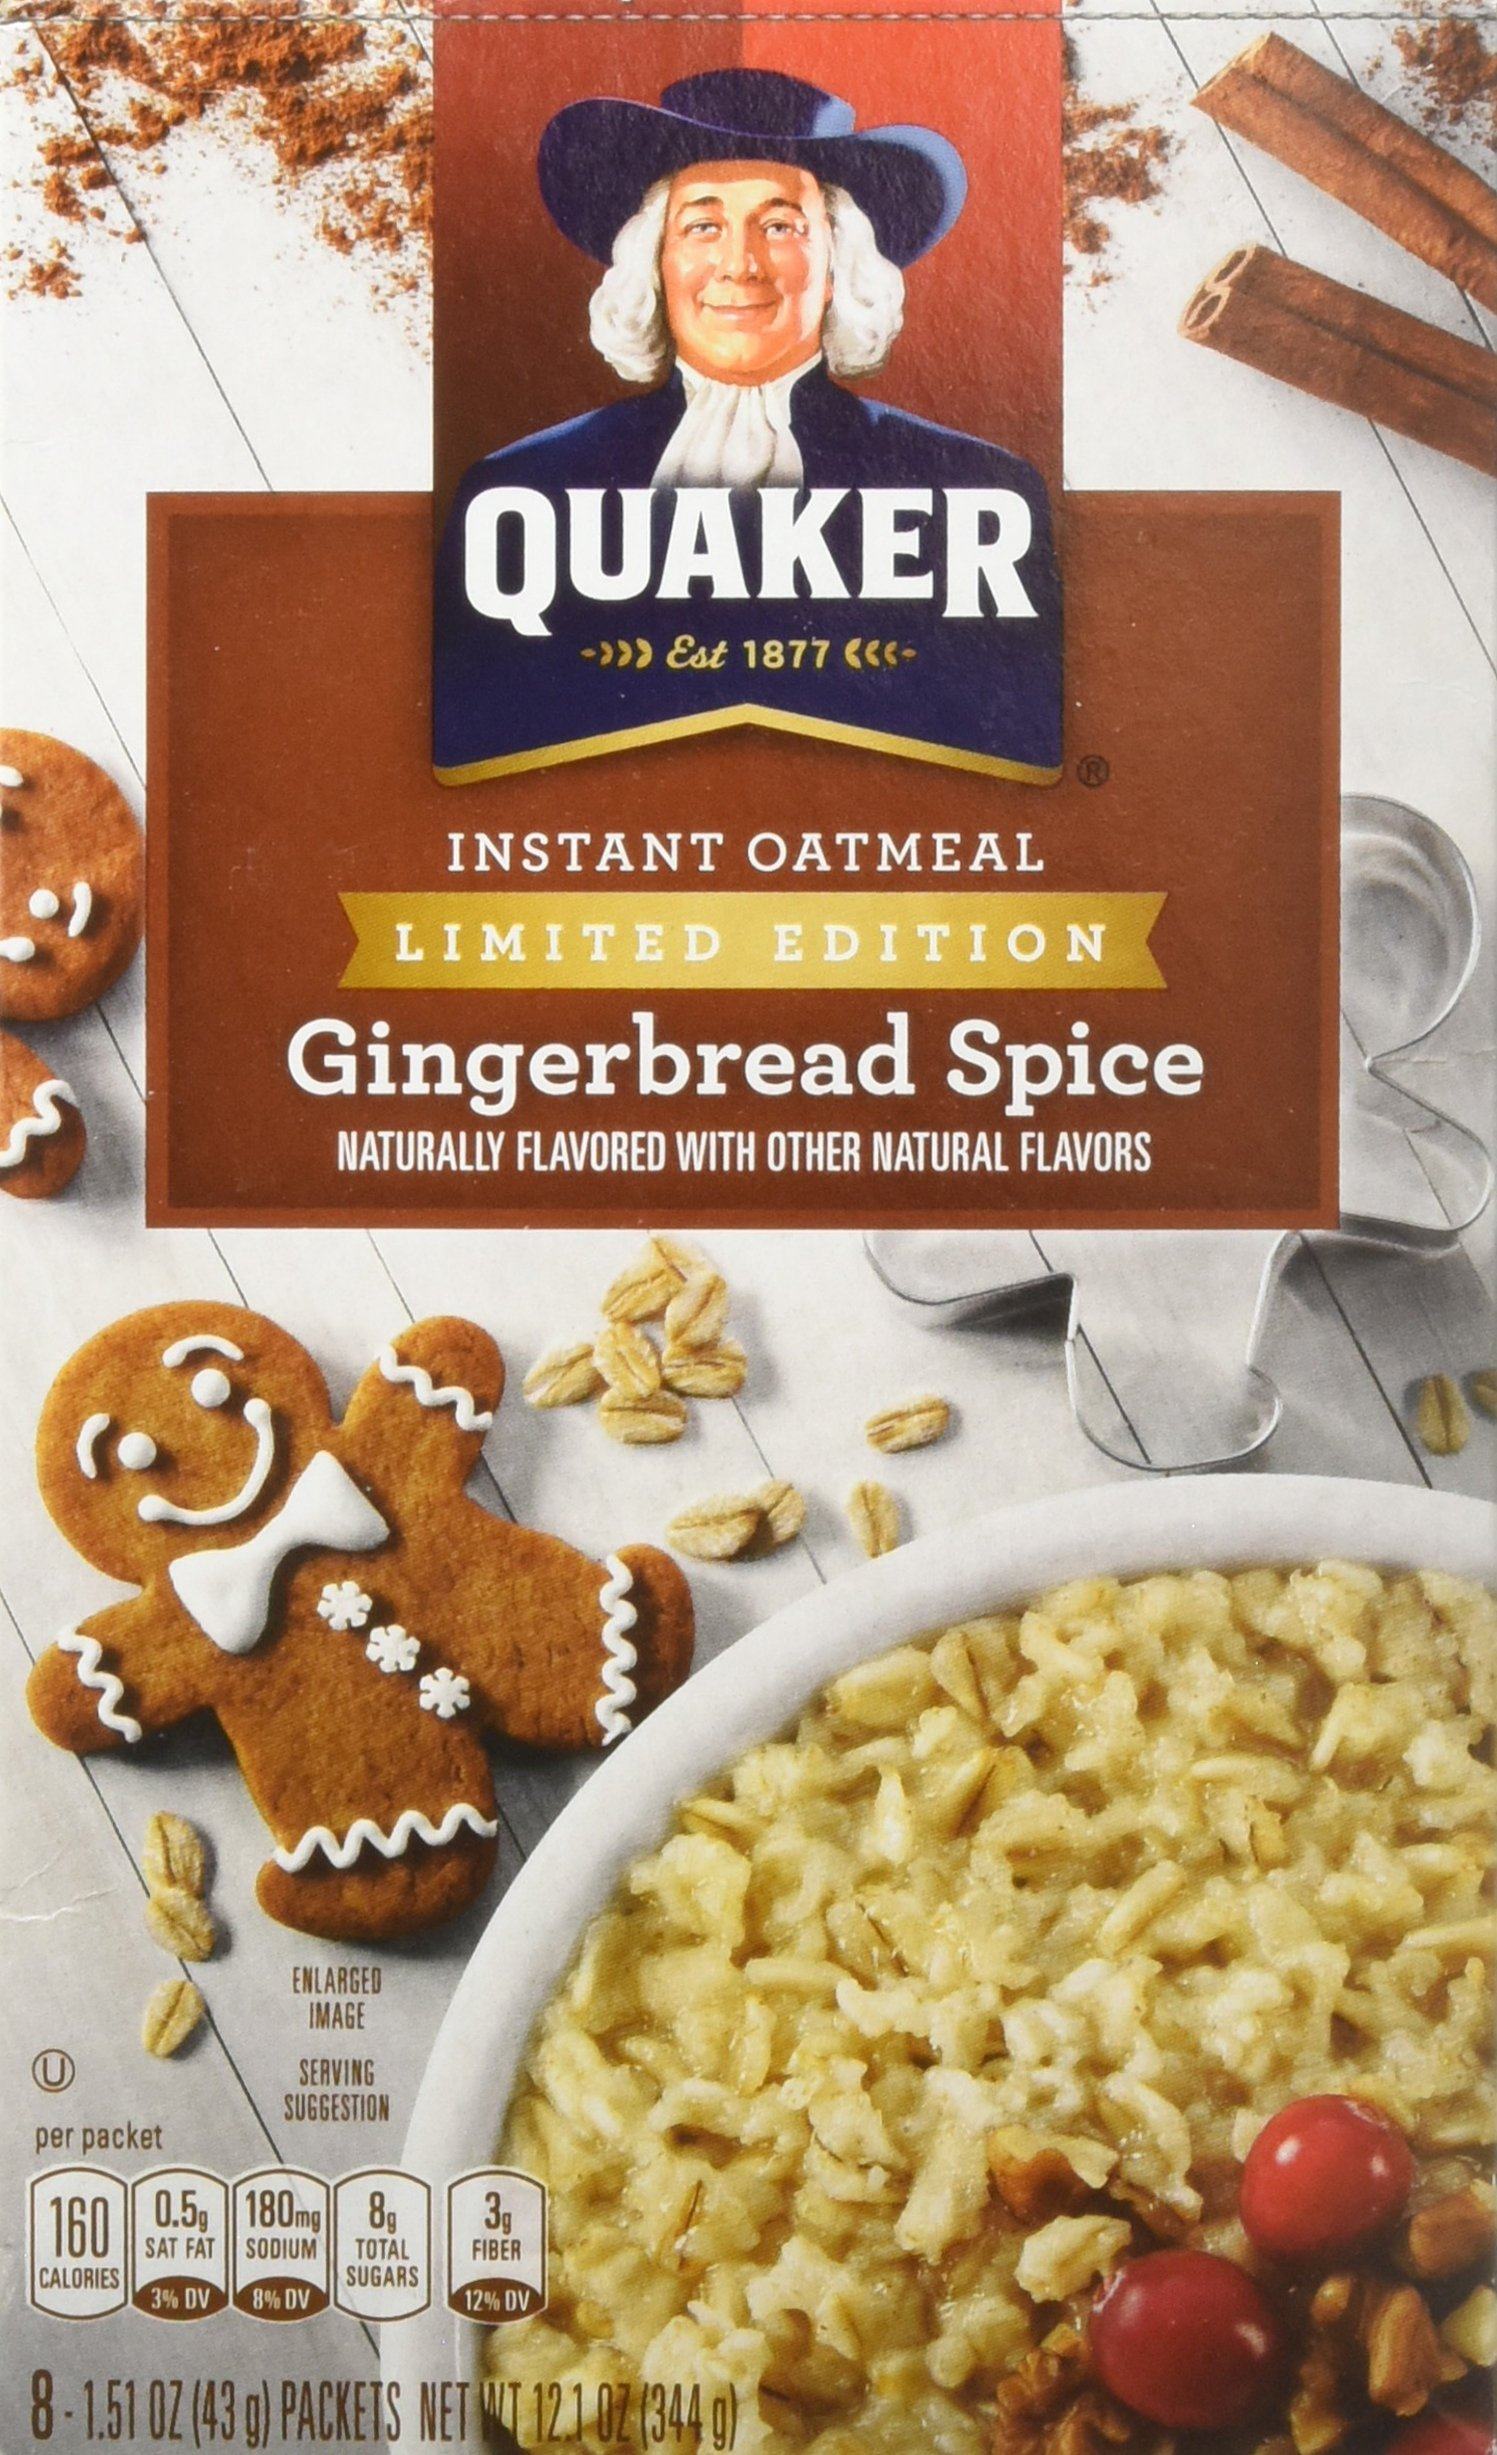 Quaker Instant Oatmeal, Gingerbread Spice, 12.1 Ounce, 8 count, (Pack of 12)